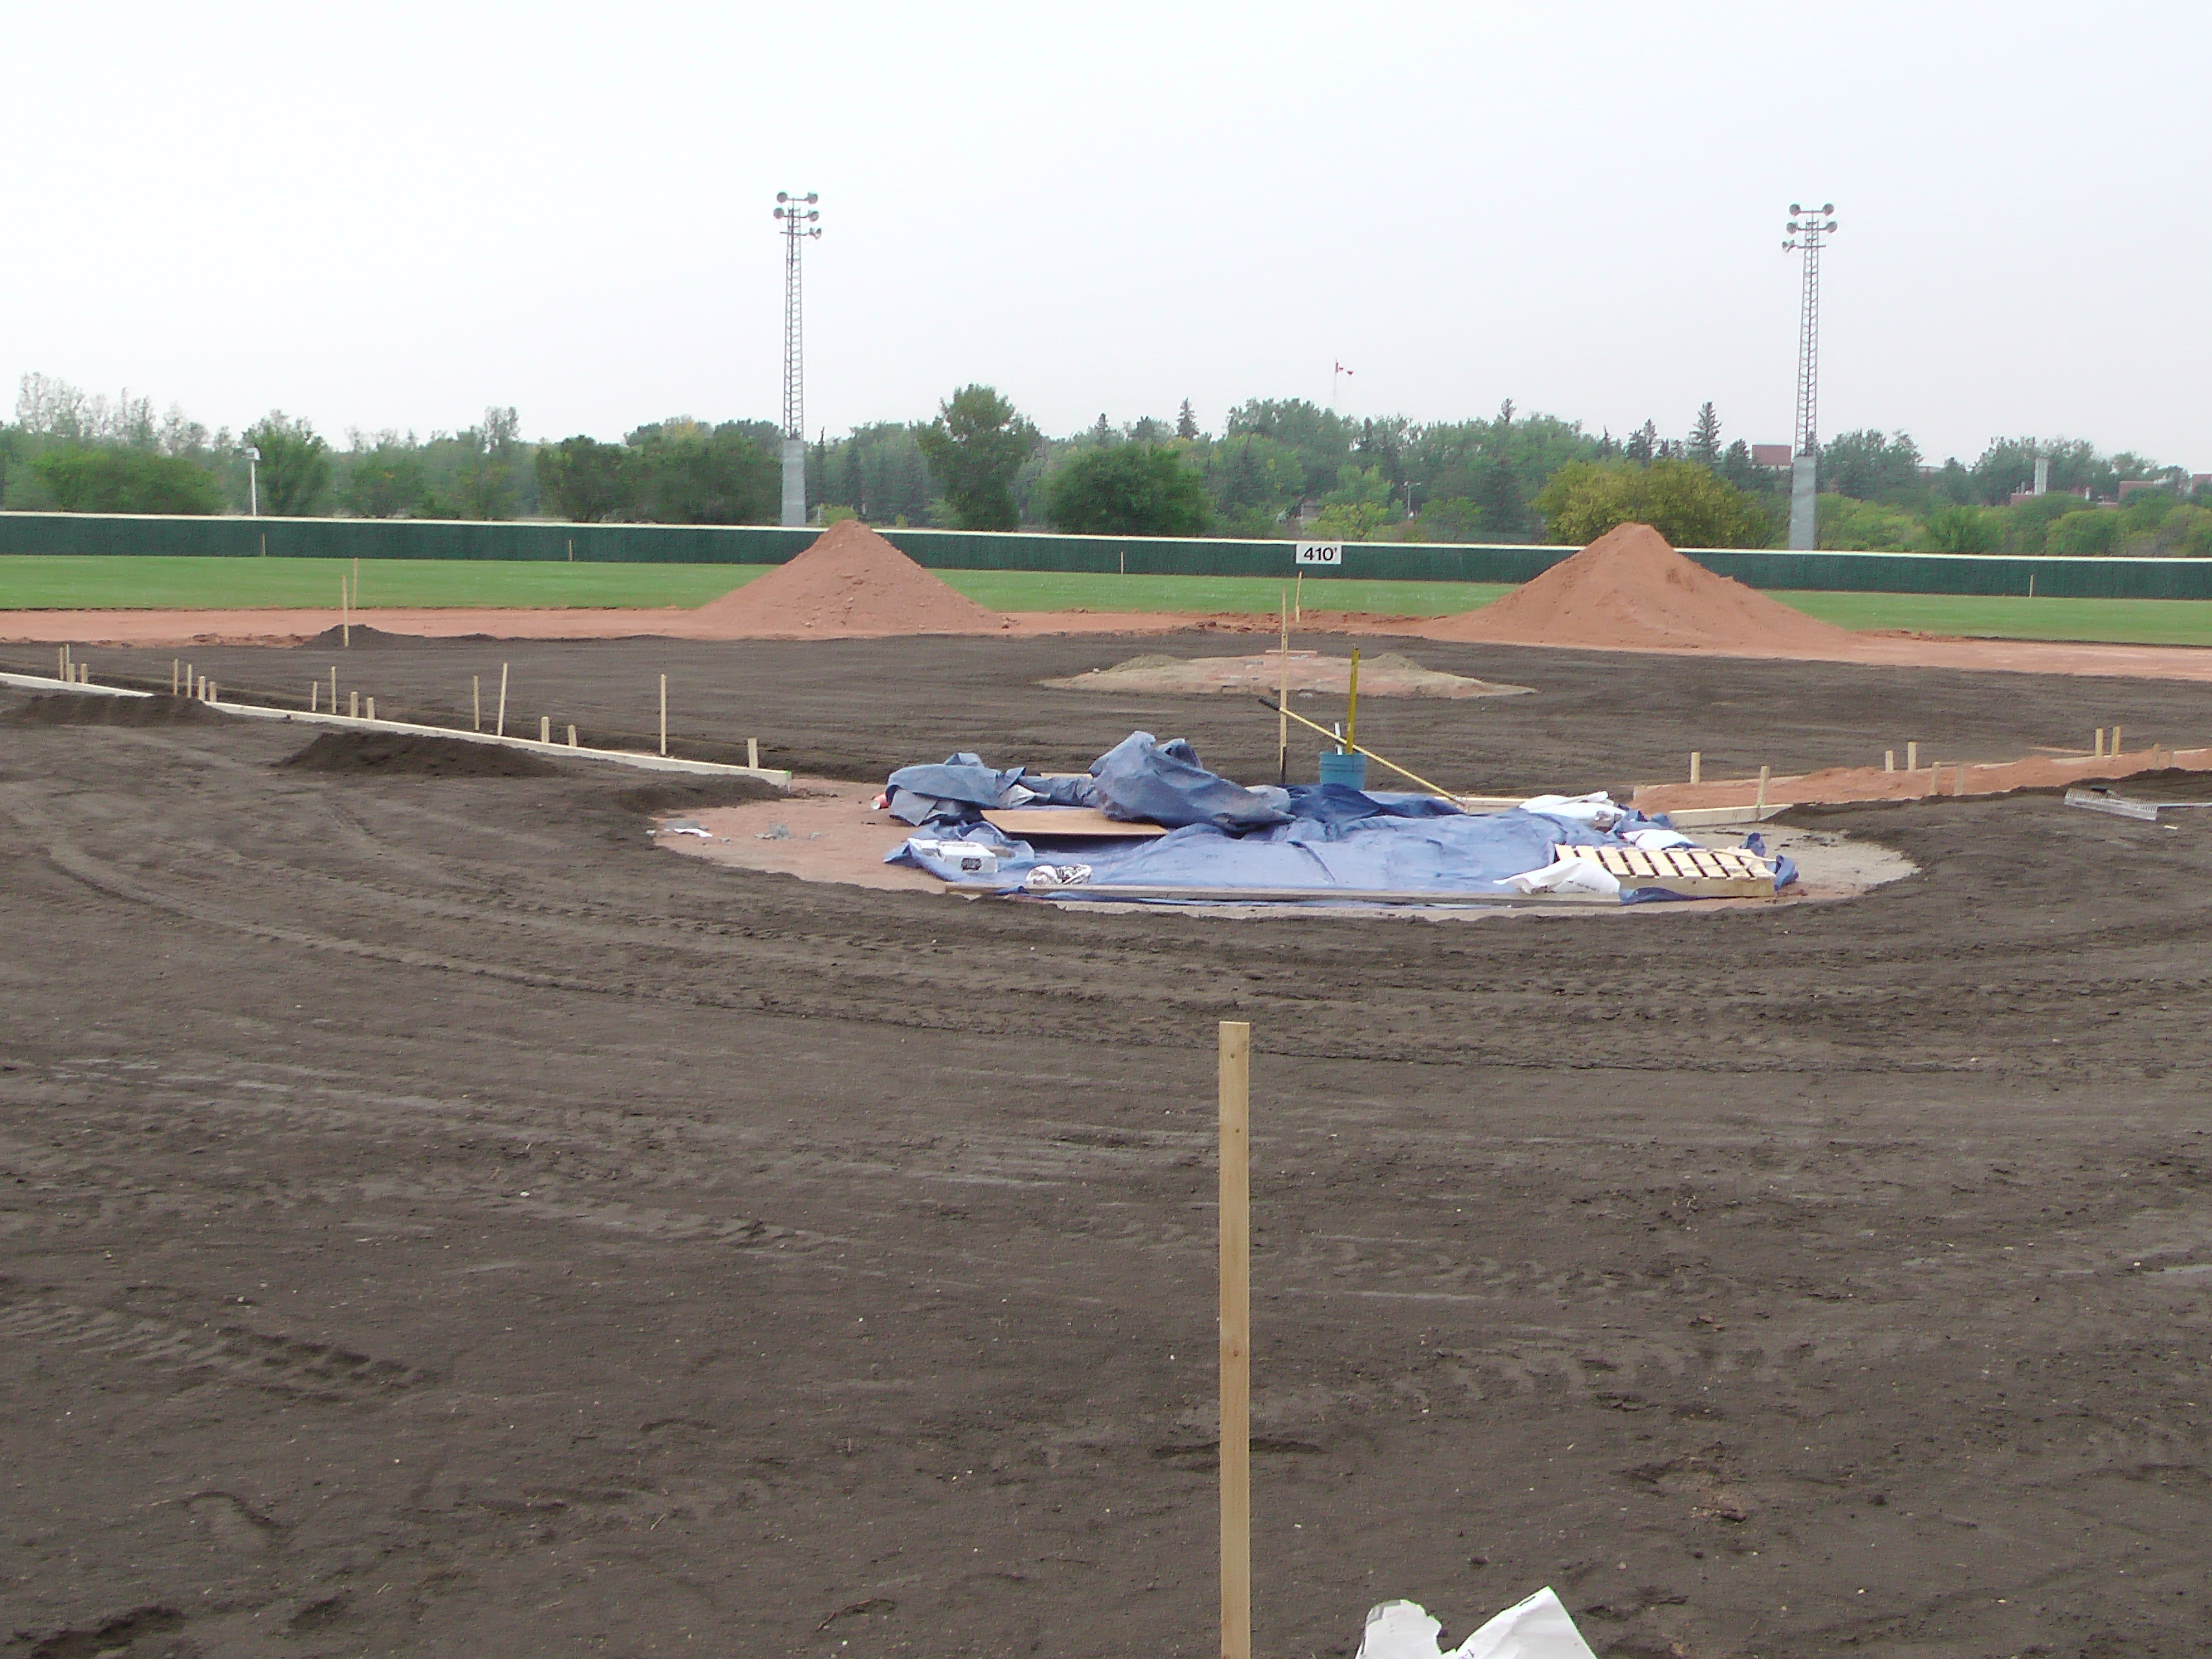 Aug 26/27 2018 Optimist Park Renovations, Continue Leveling Top Soil, More Top Soil added, Digging/Leveling Base Lines/Start Level Shale - Image 14